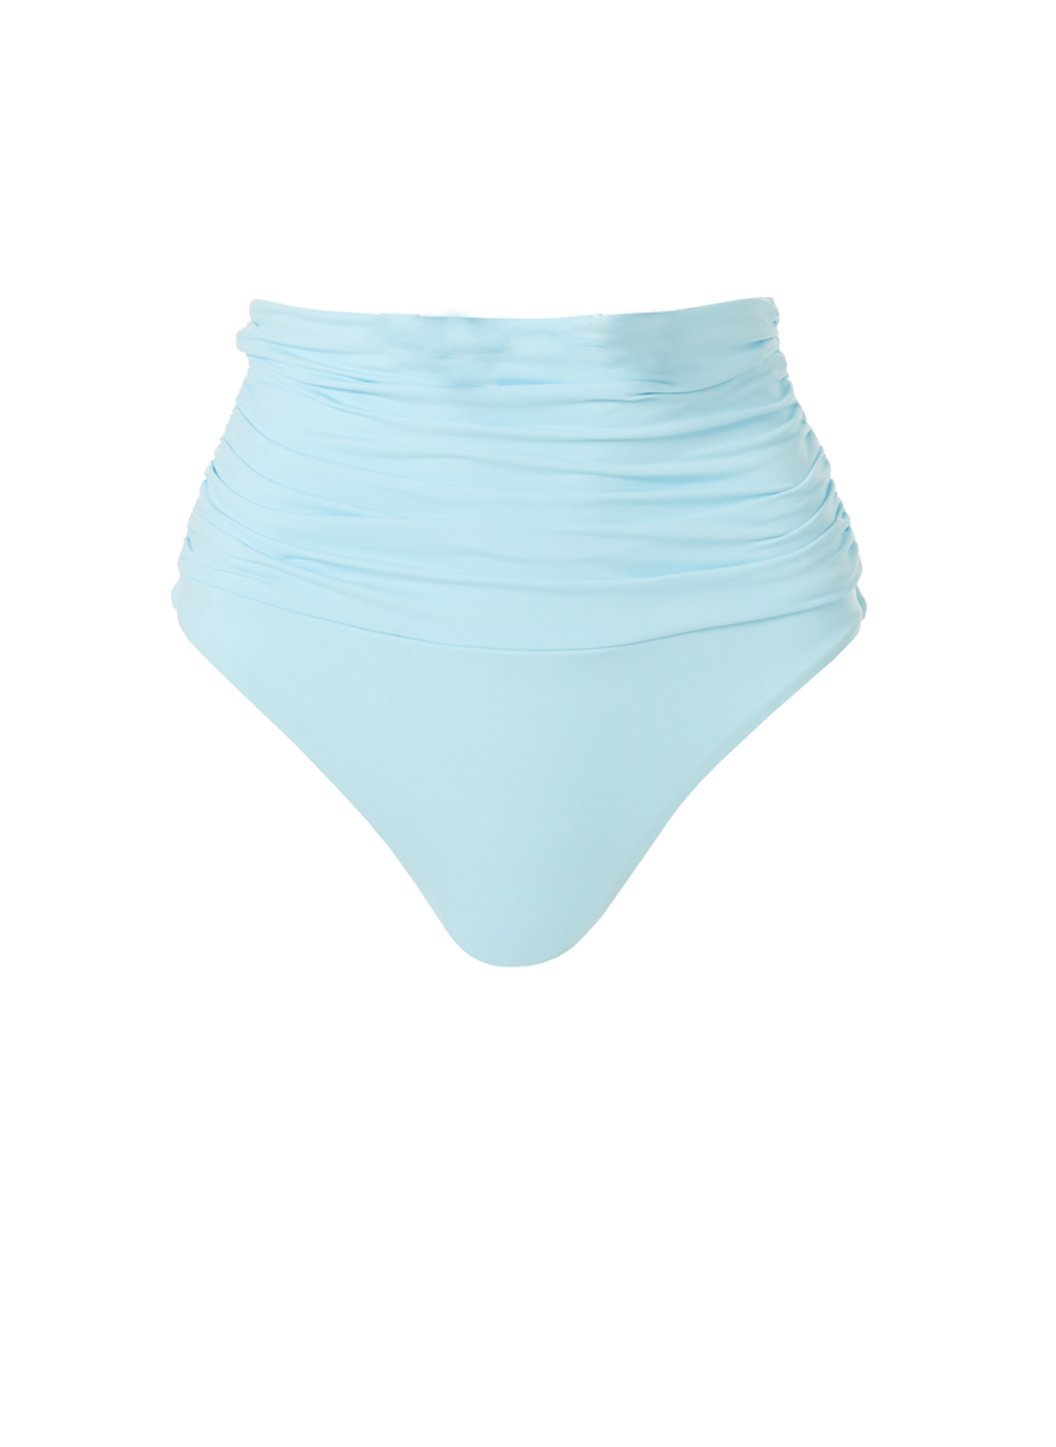 caribe-celeste-bikini-bottom - Cut-Out